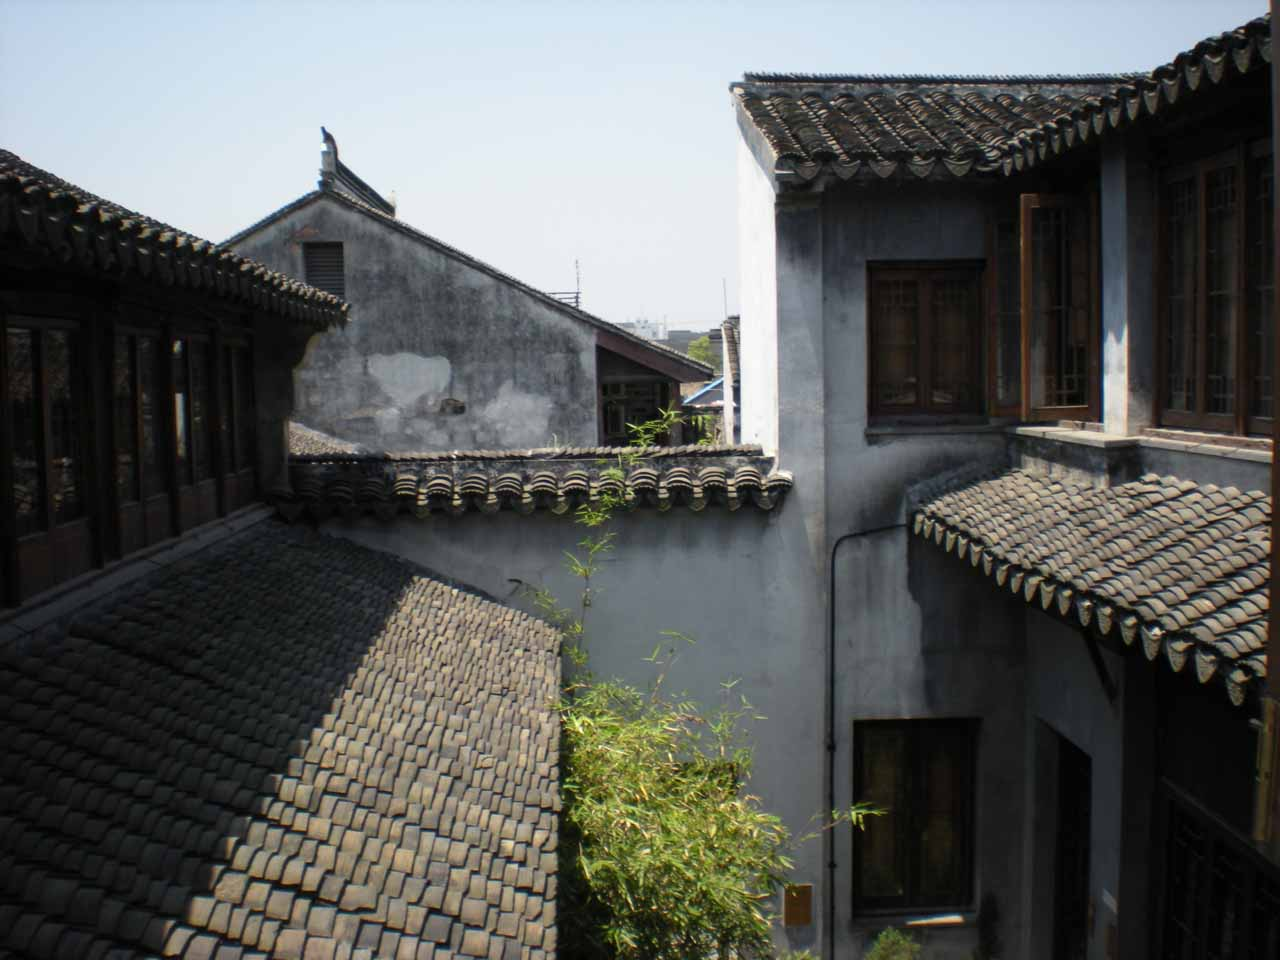 Looking at roofs within our lodging area at Suzhou